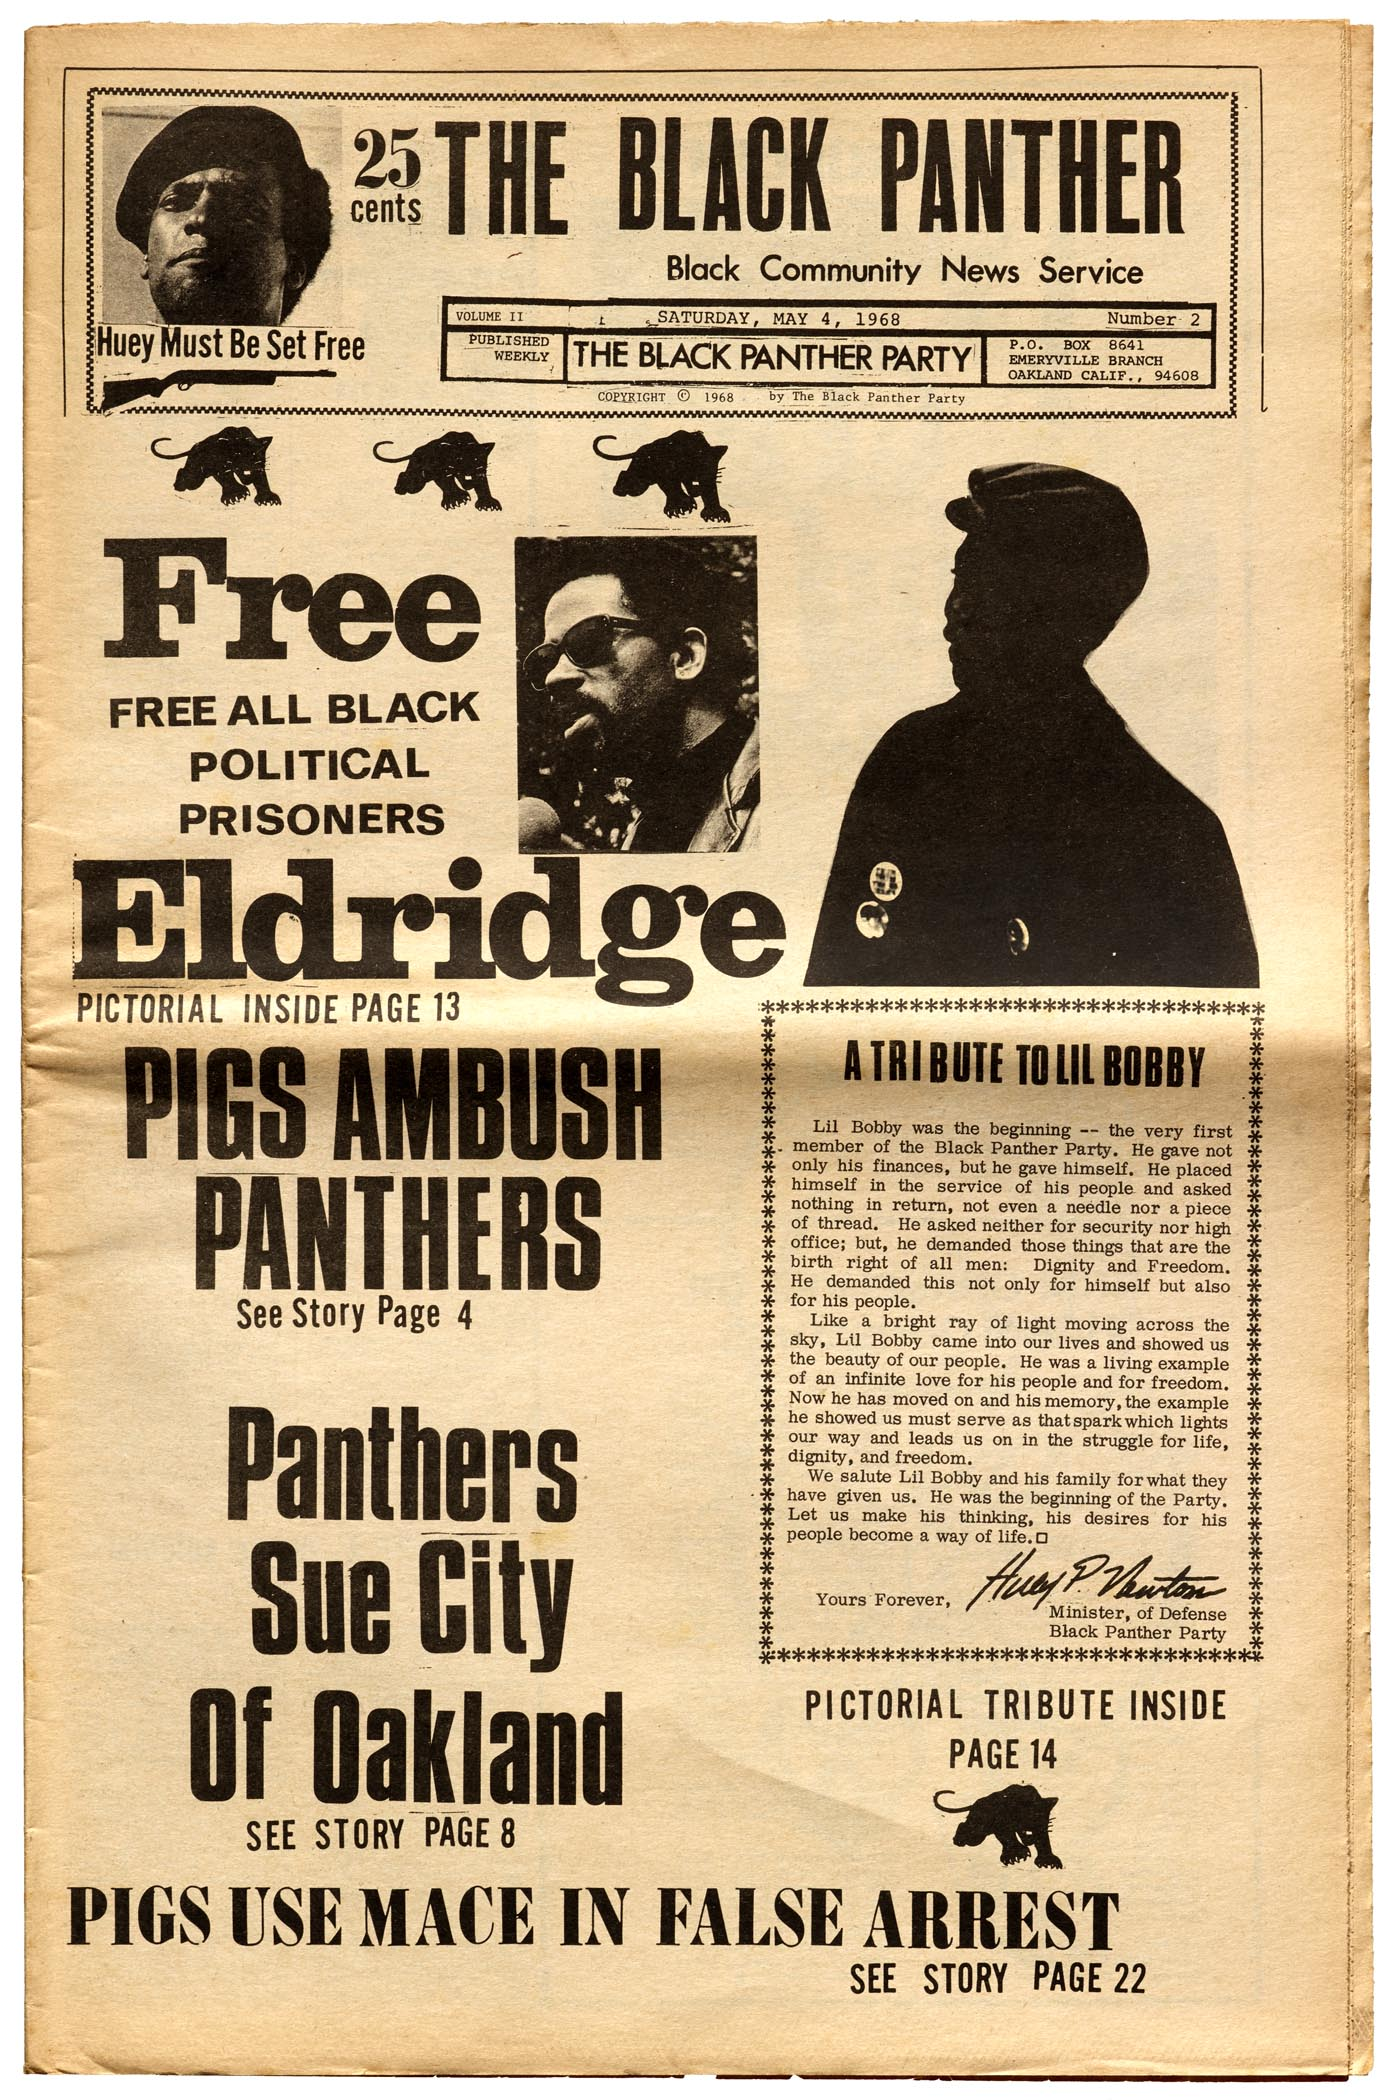 The Black Panther, May 4, 1968